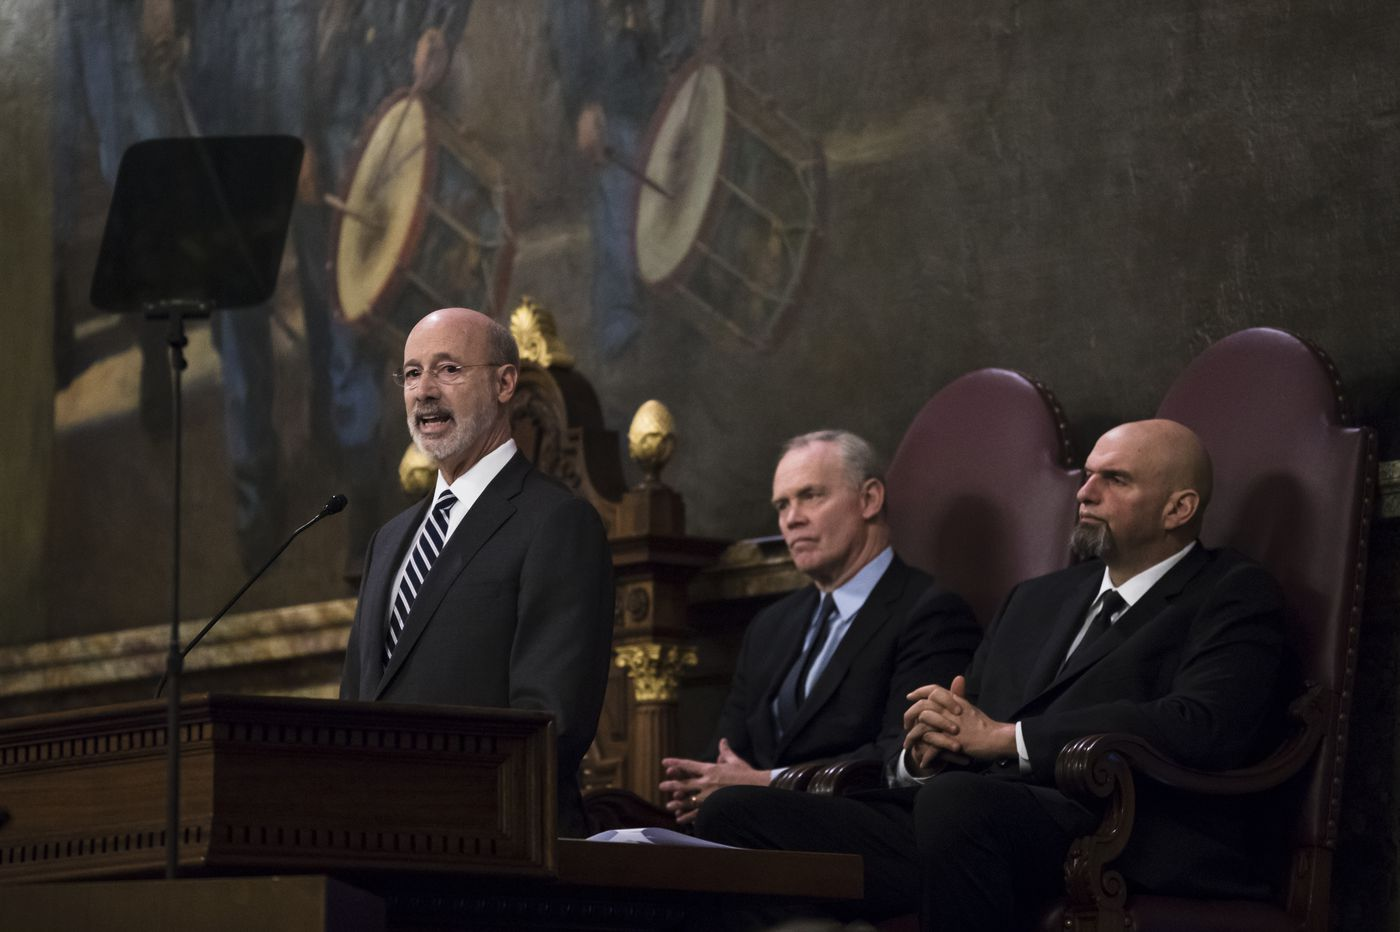 It's Groundhog Day for Governor Wolf & his budget proposal | Editorial